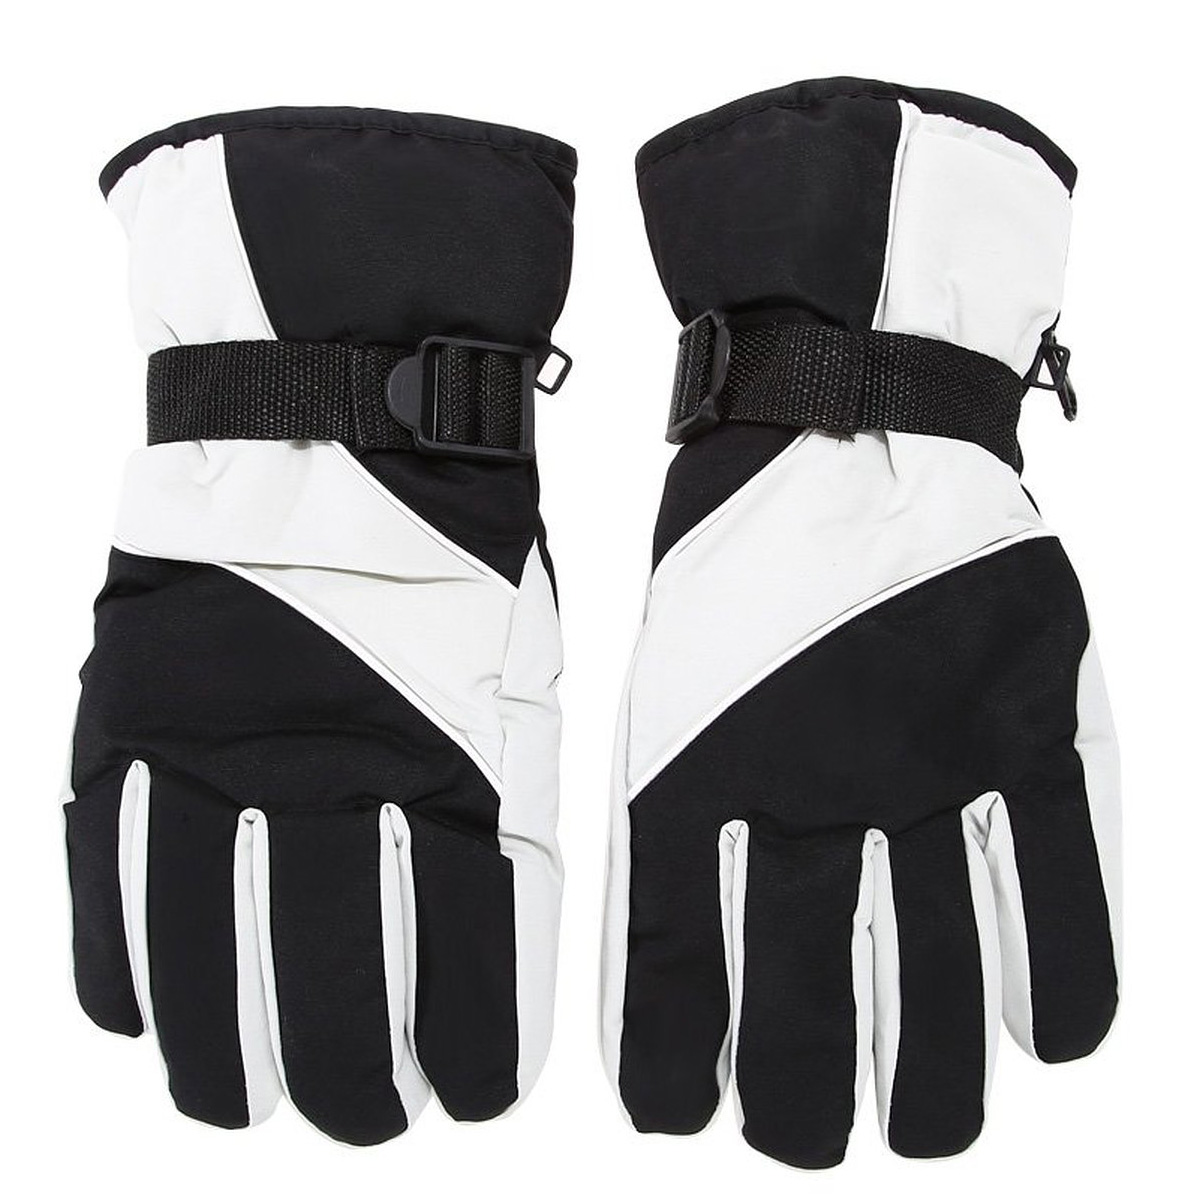 Mens ski gloves xxl - New Arrival Men Ski Gloves Thermal Waterproof For Winter Outdoor Sports Snowboard Red Sky Blue Grey